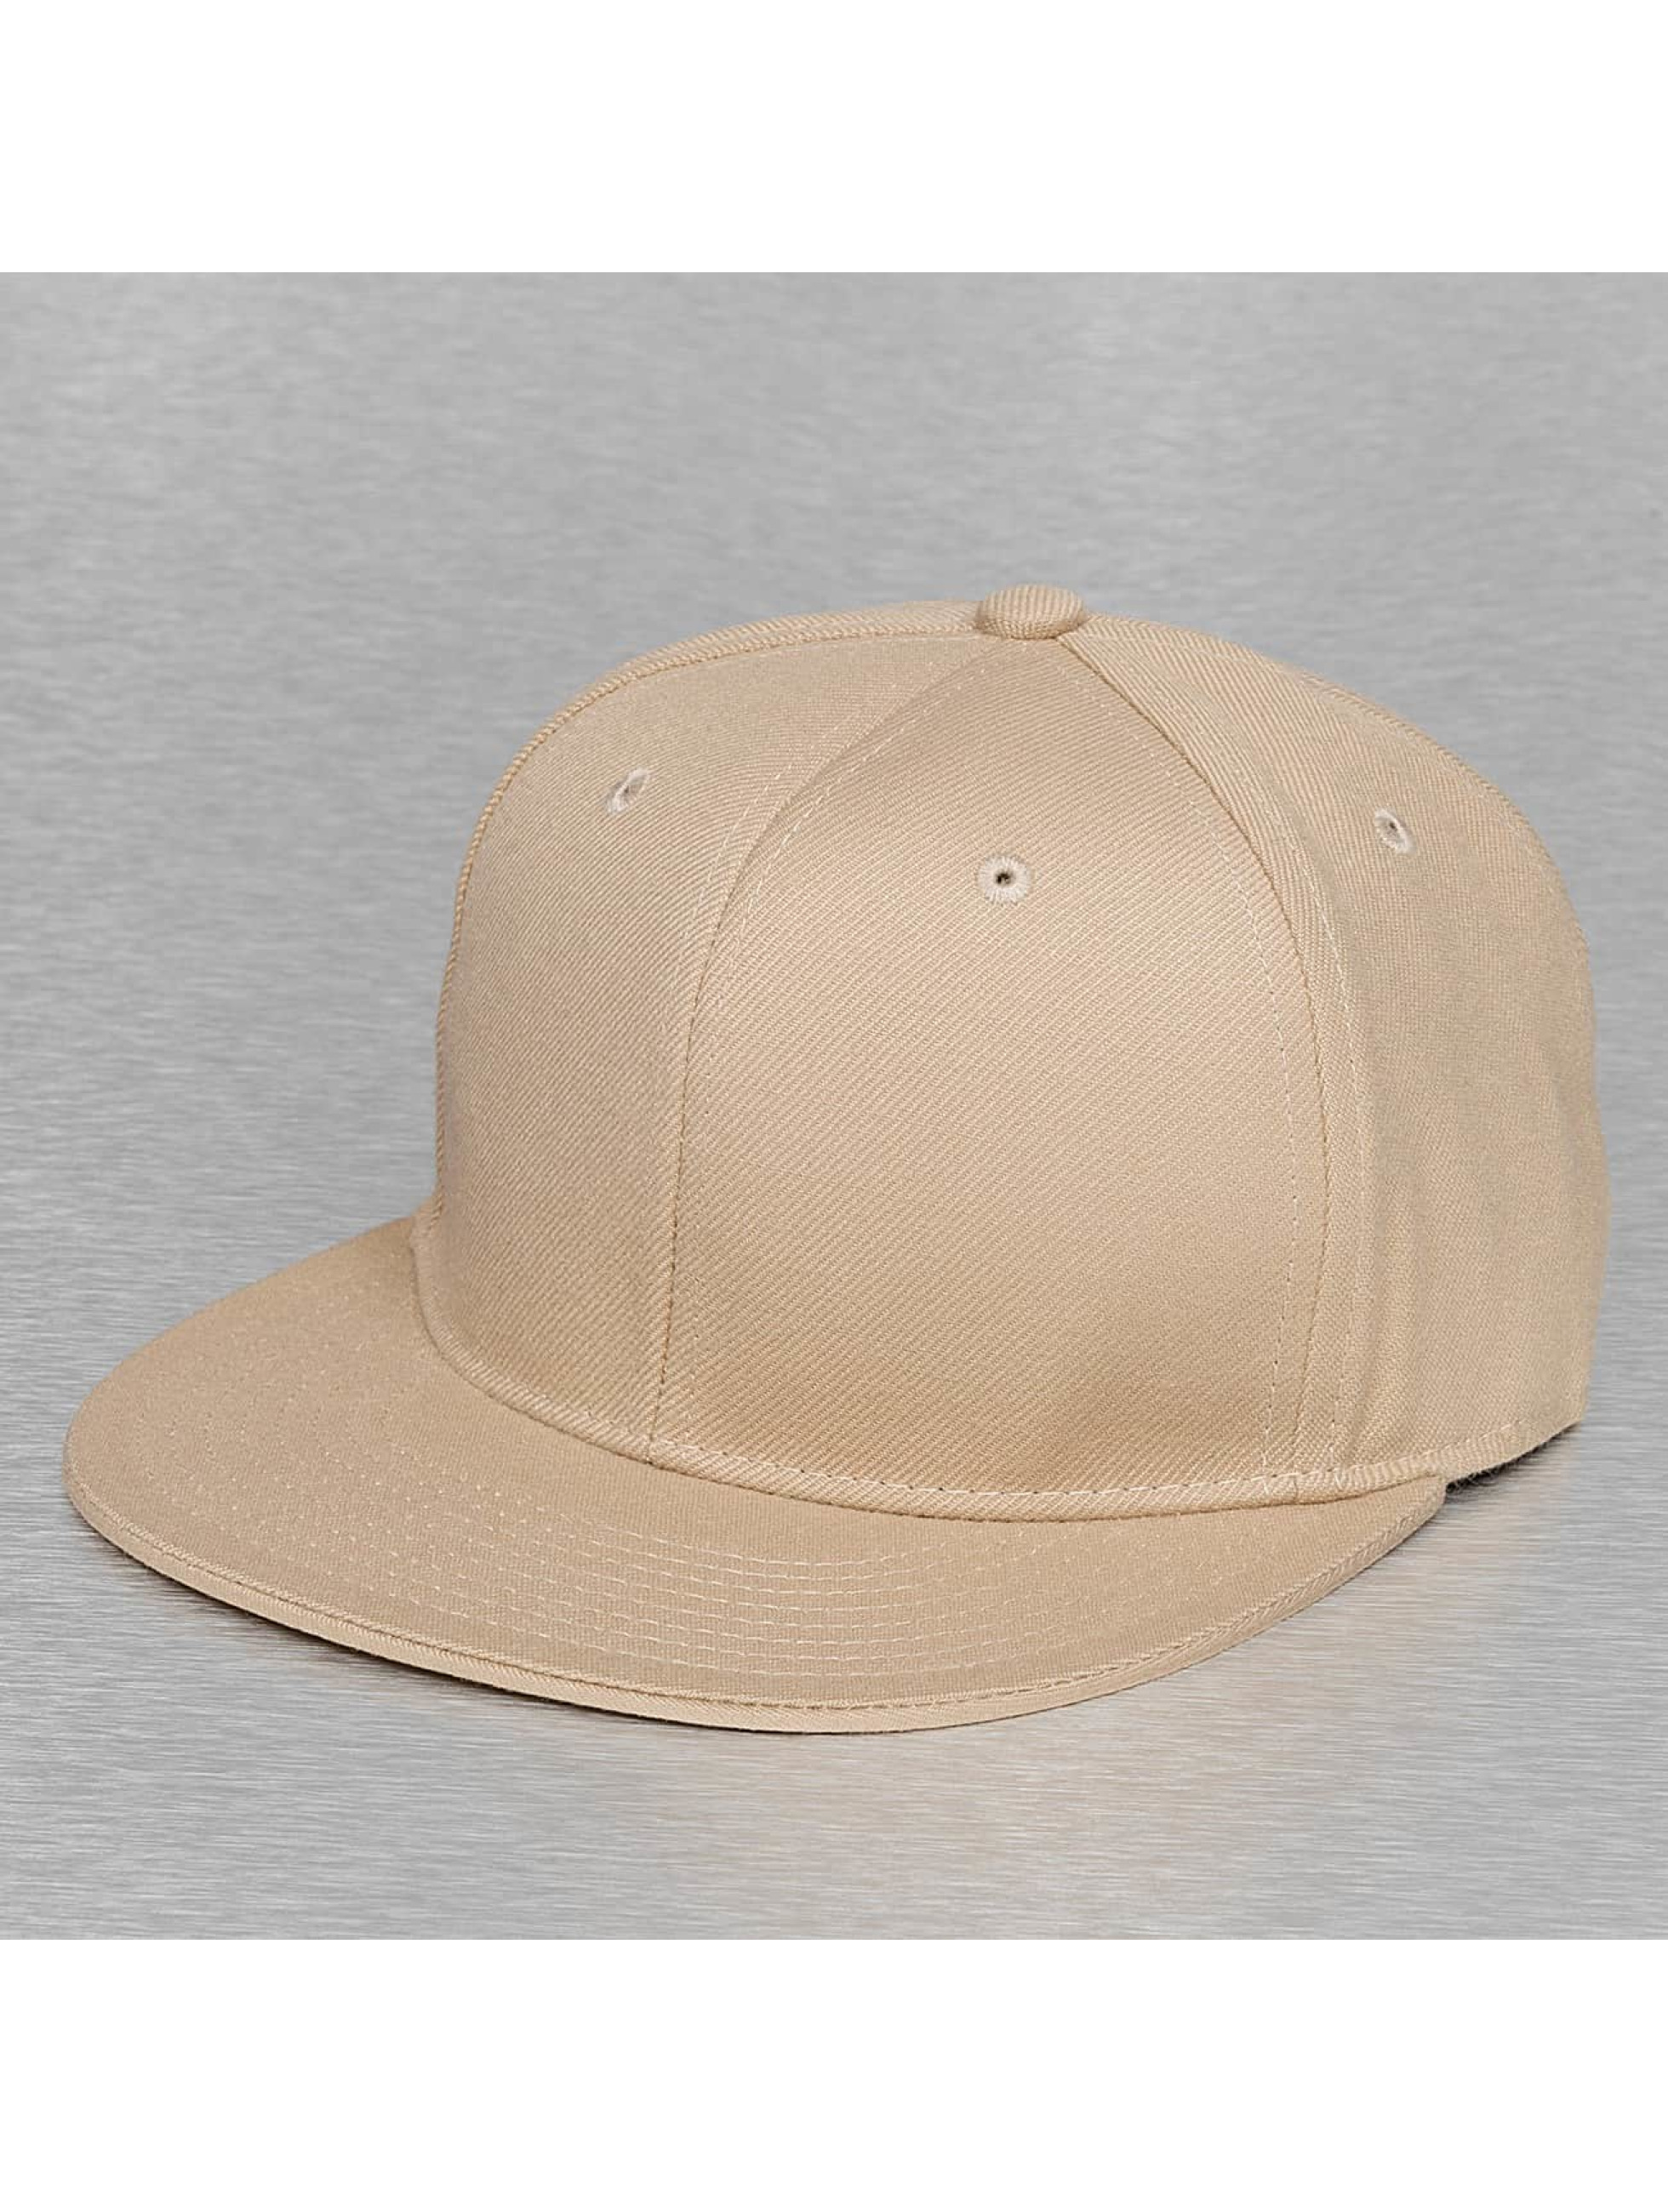 Decky USA Fitted Cap Flat Bill khaki